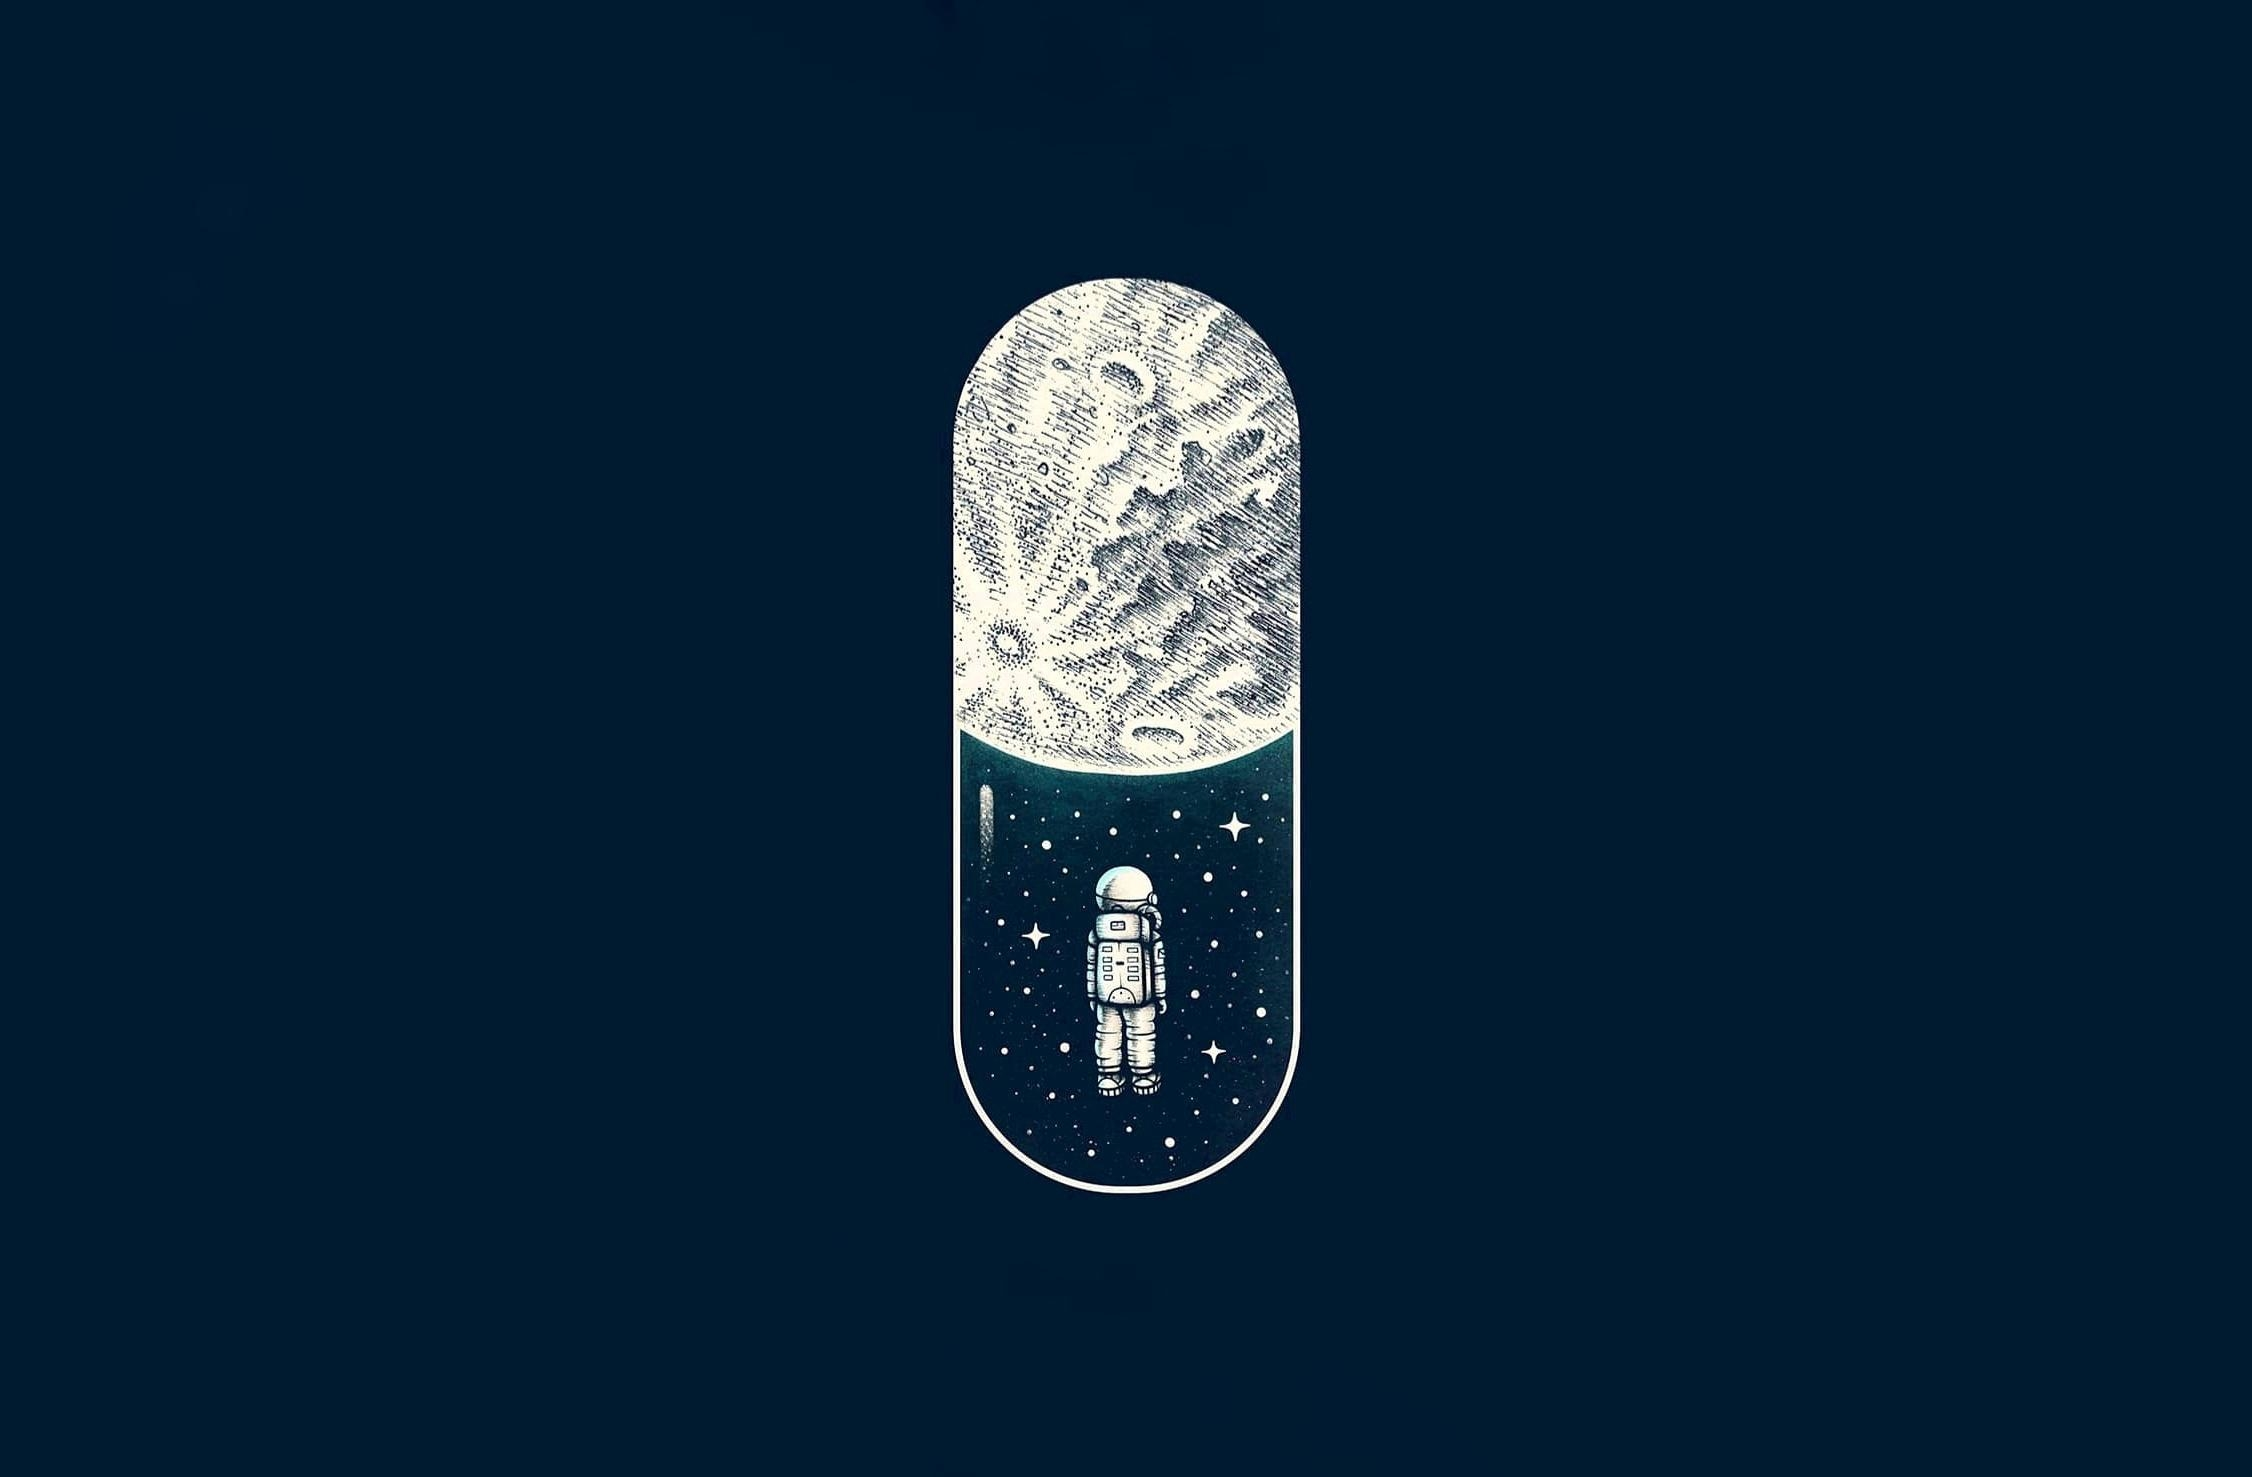 General 2252x1477 space Capsule artwork Moon astronaut illustration stars pills